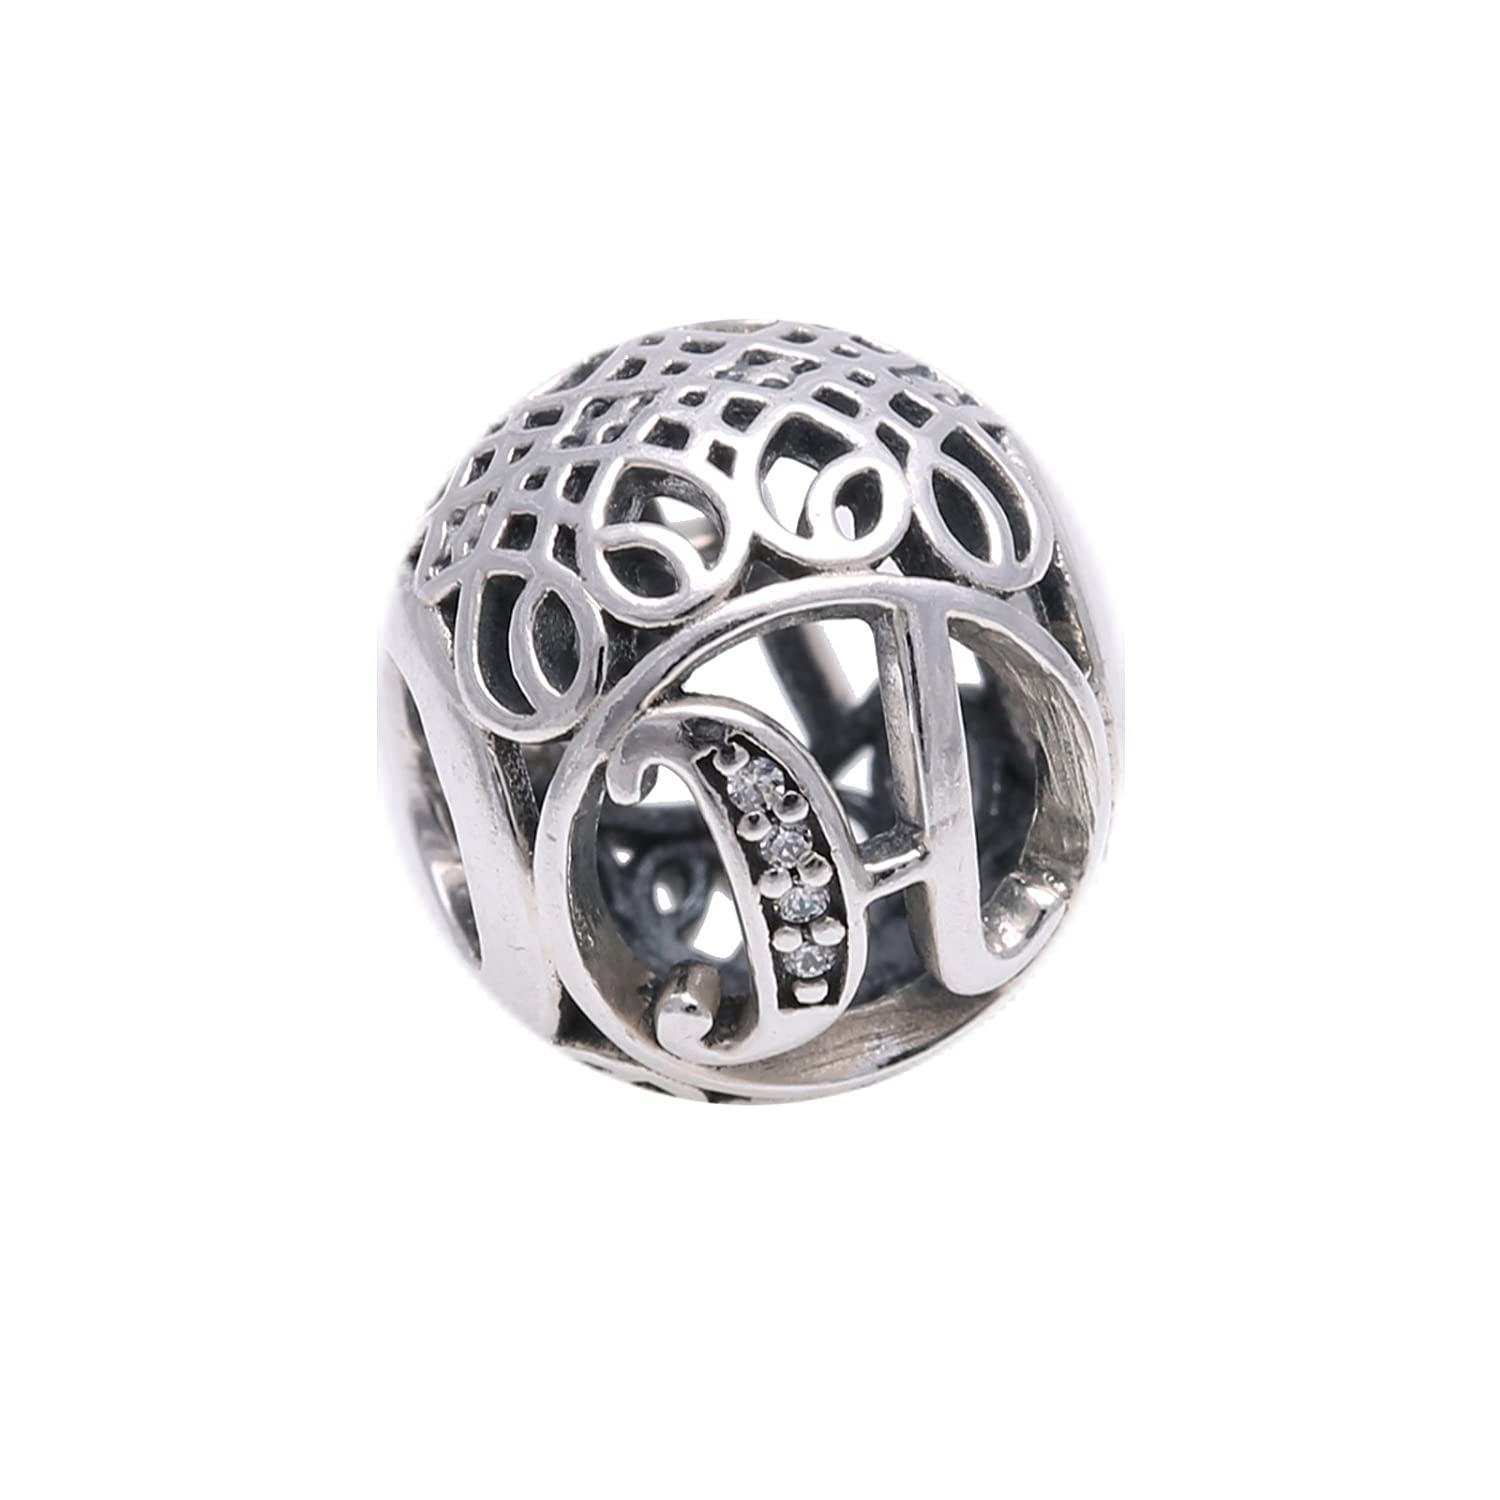 98e14ecf4 Amazon.com: PANDORA 791852CZ Sterling Silver Letter H Charm with Cubic  Zirconia: Jewelry